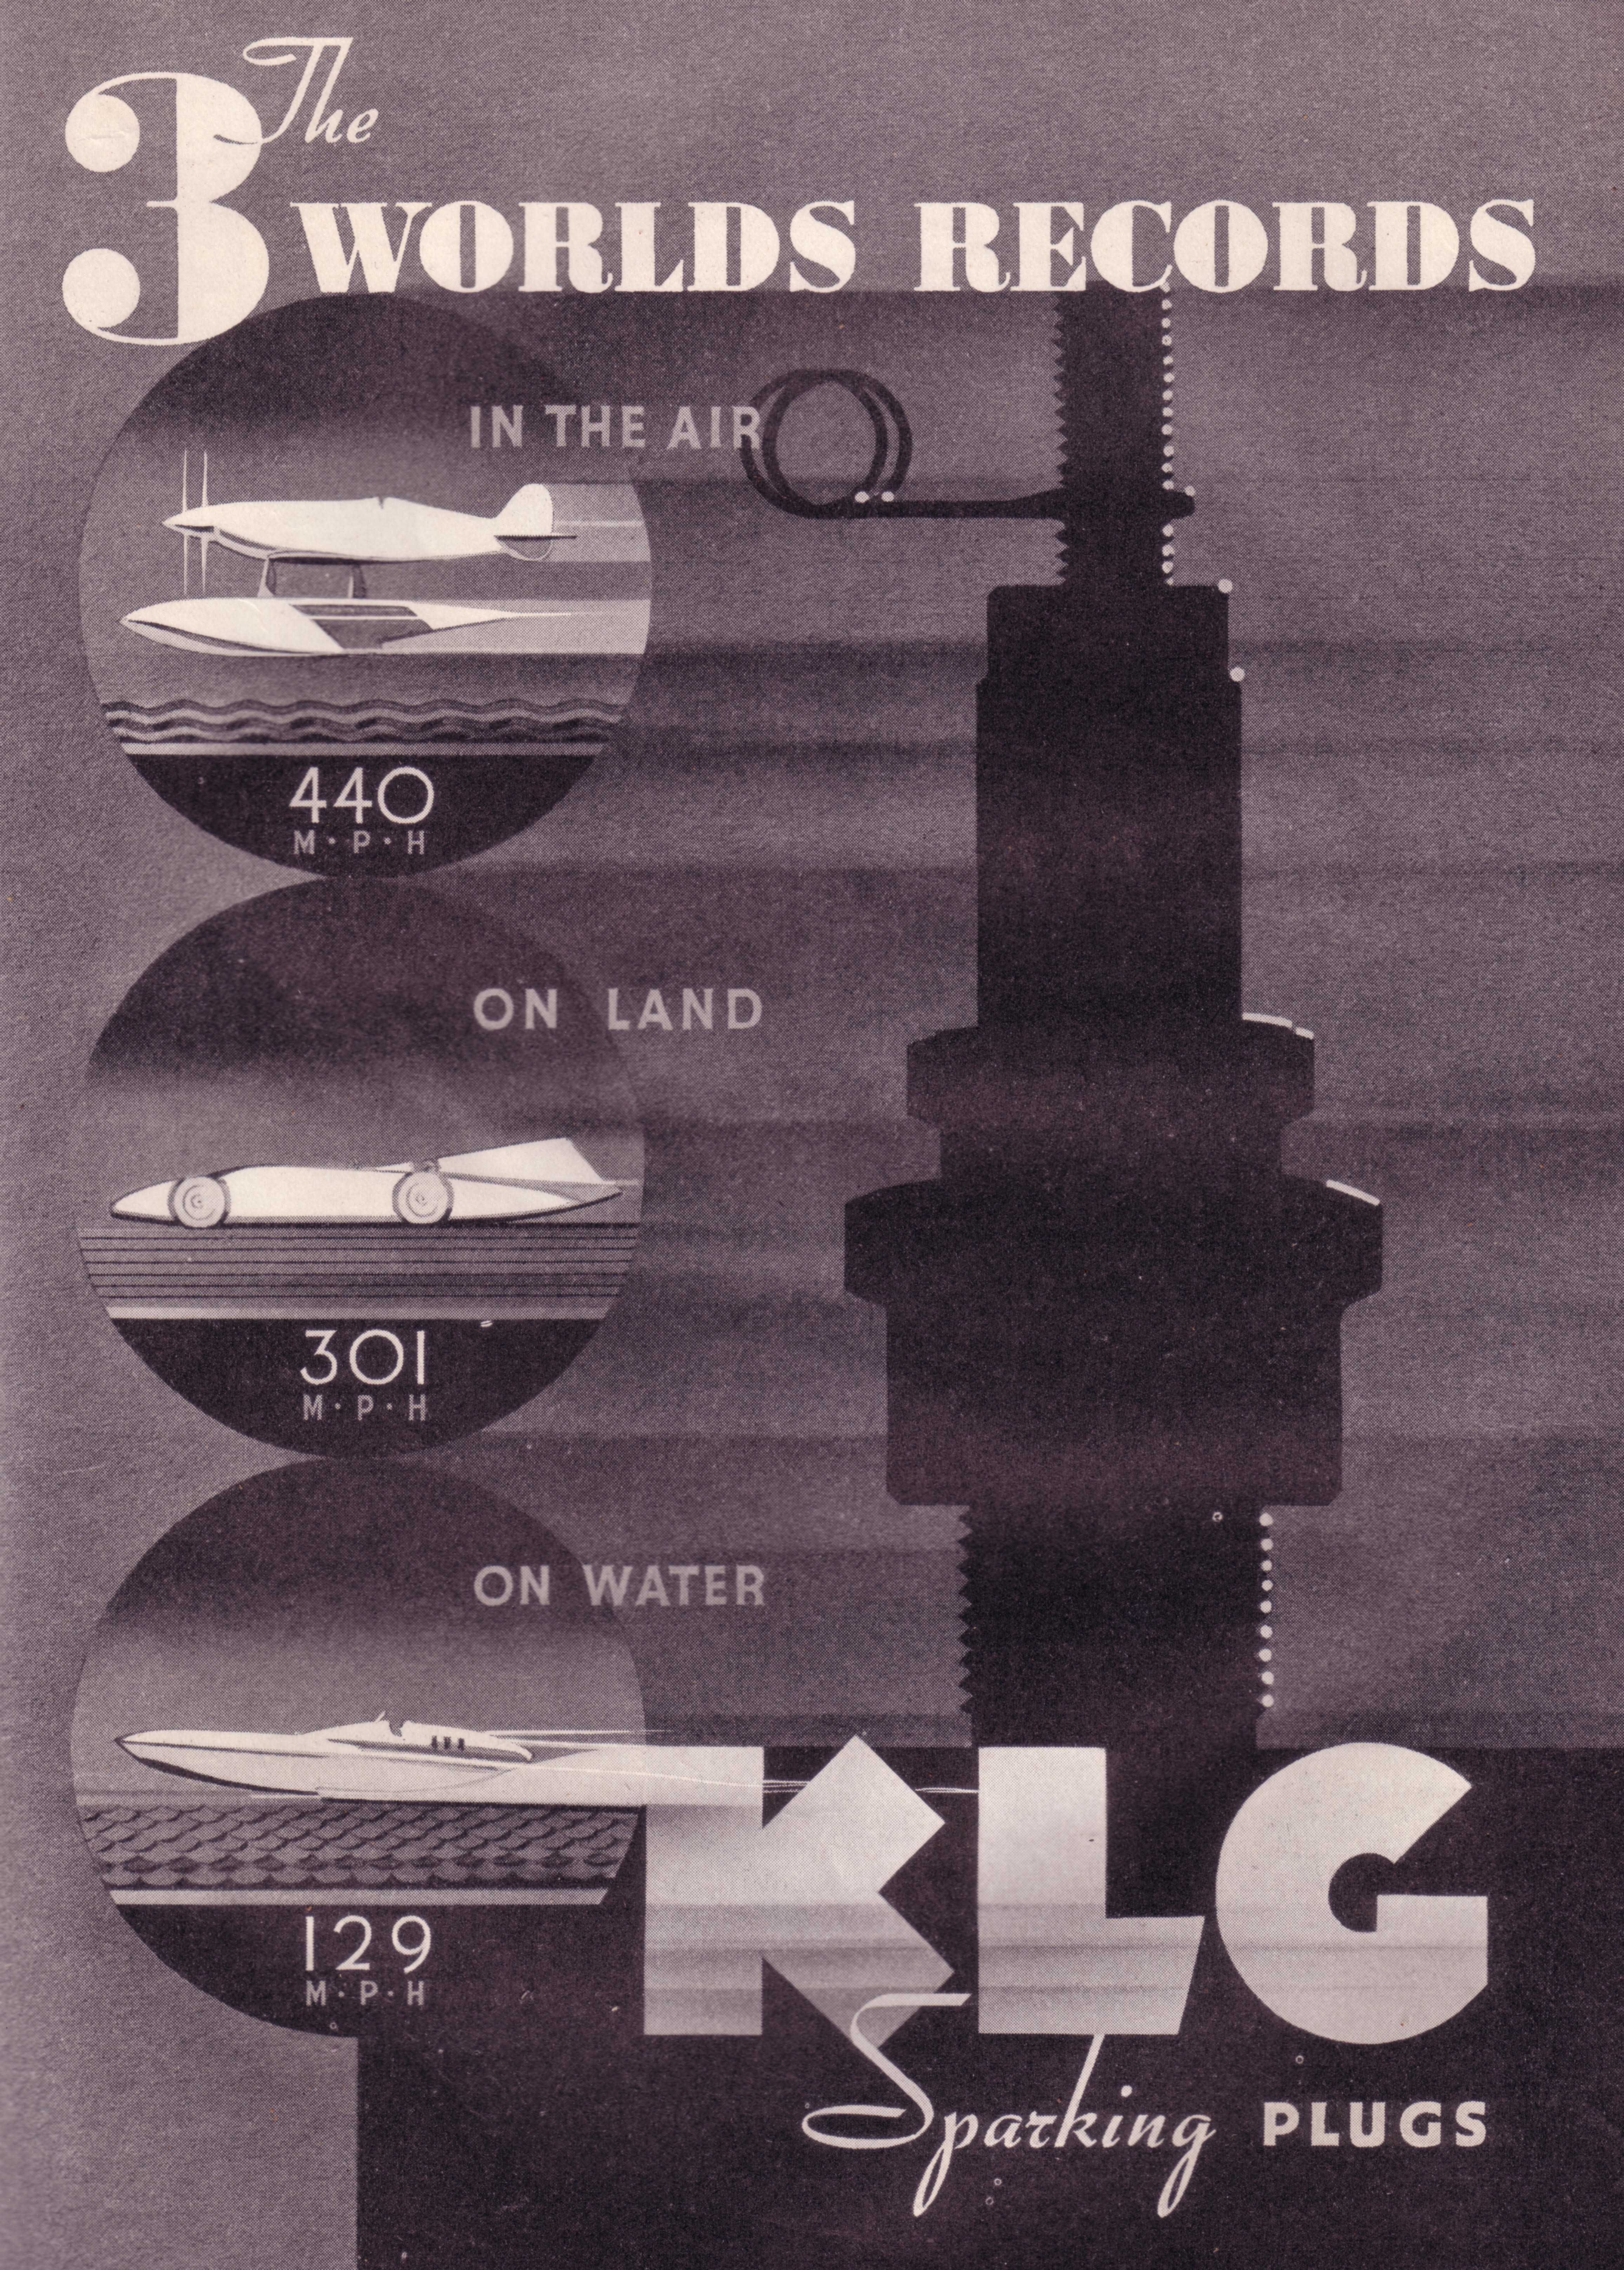 KLG Sparking Plugs - published in The Aeroplane - October 6, 1937